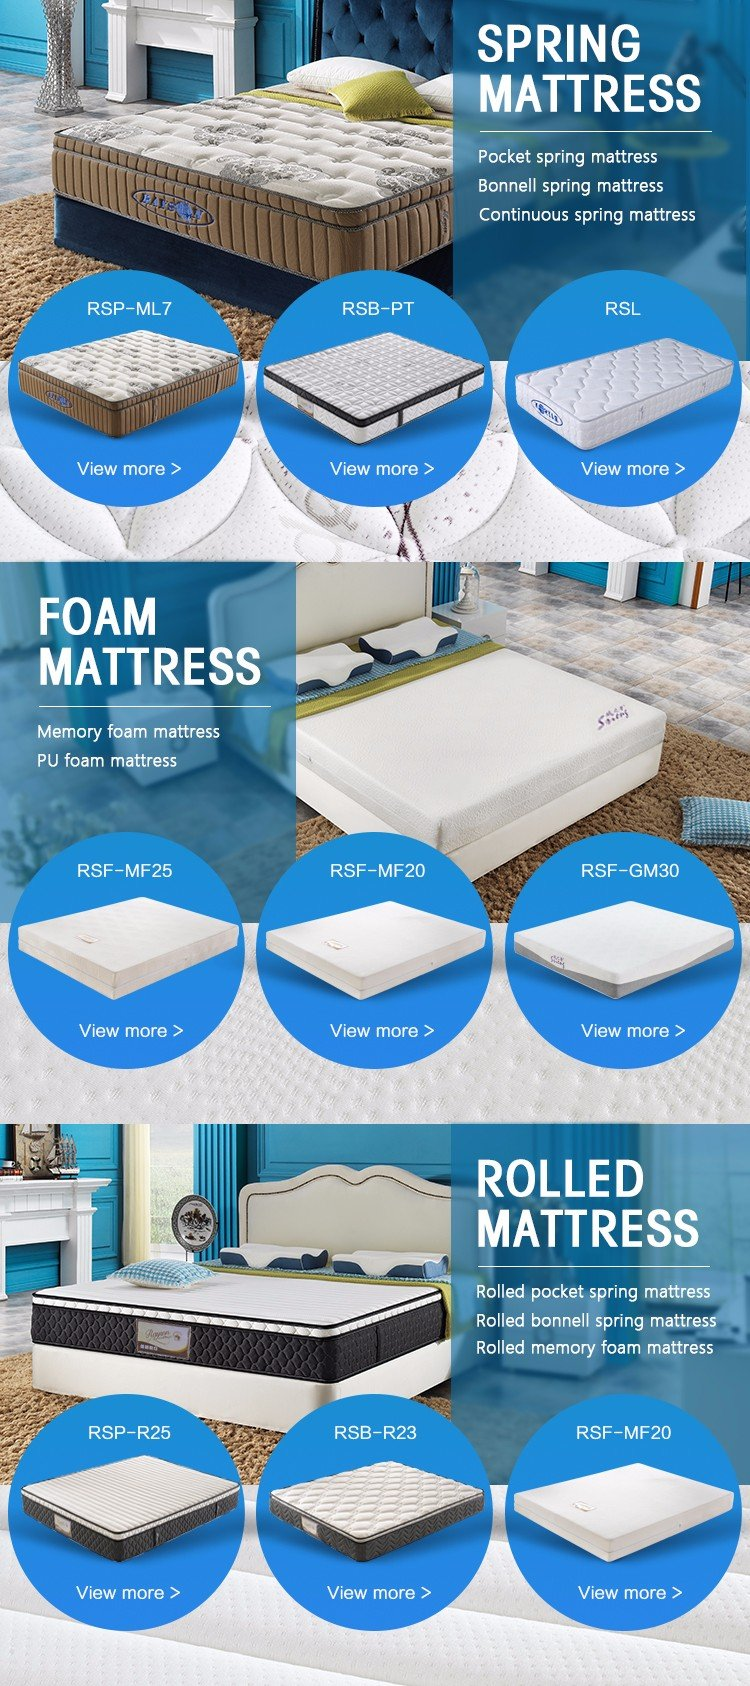 Latest is spring mattress good for health life Suppliers-10